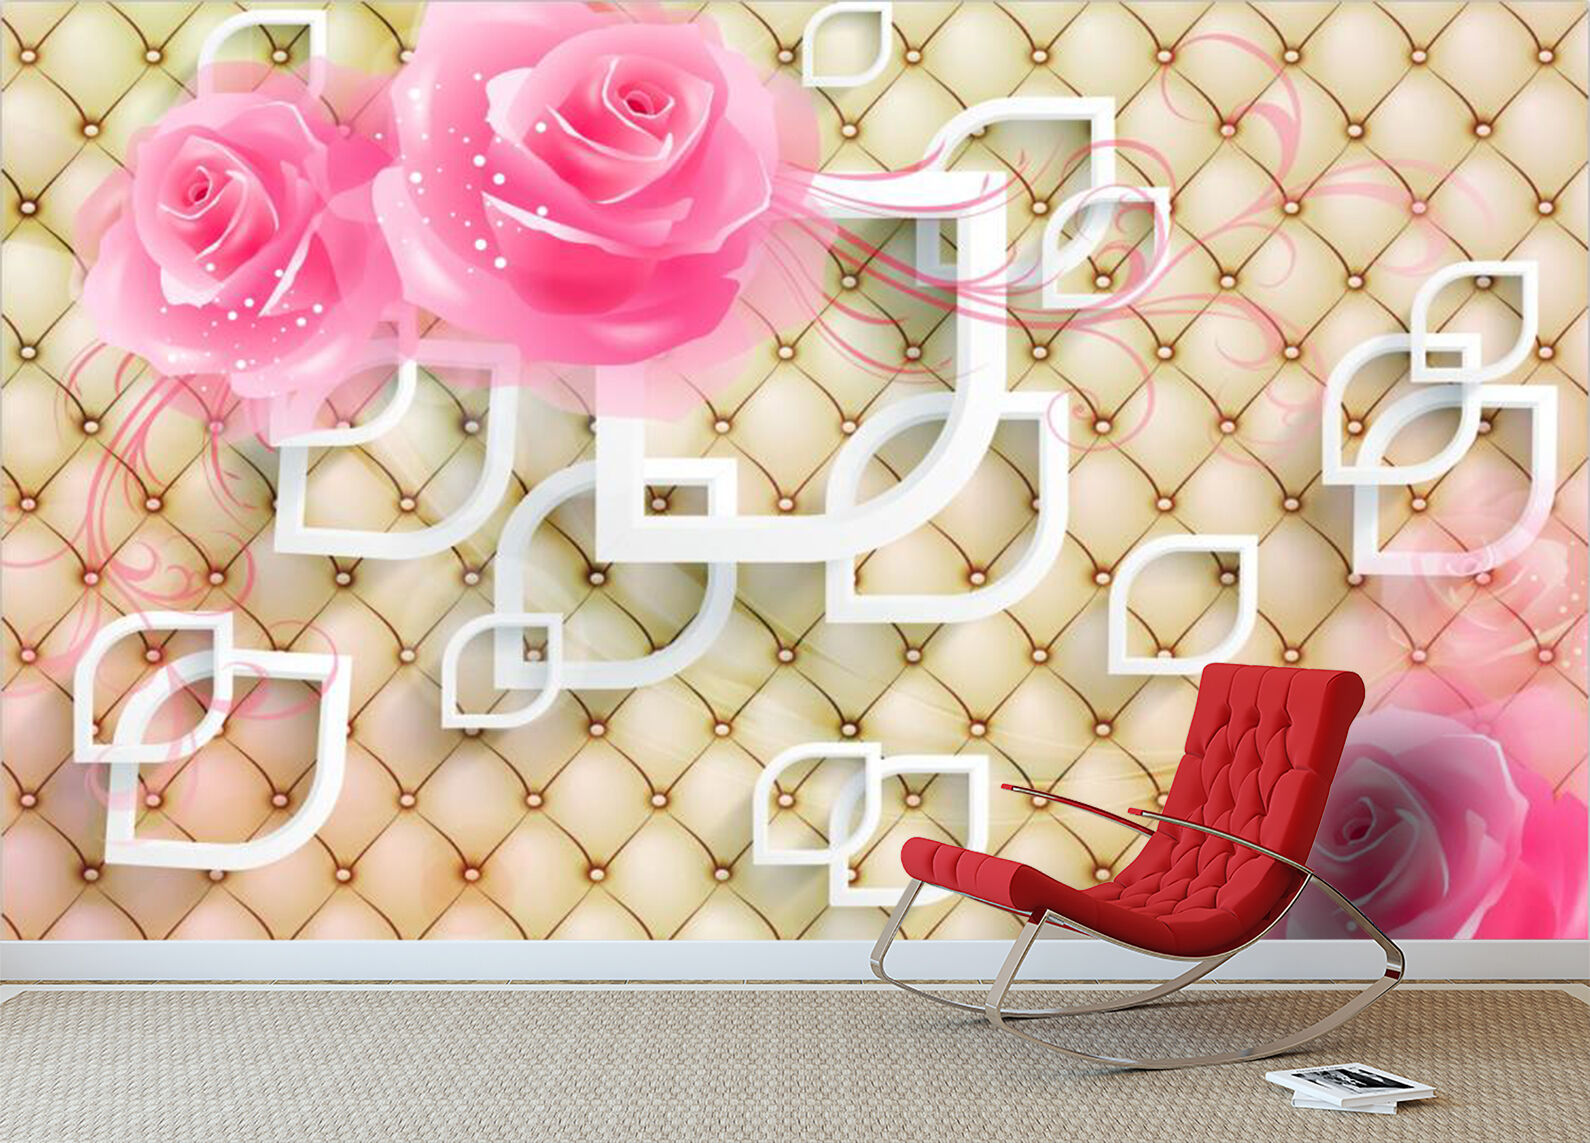 3D Floral texture Beautiful Wall Paper Print Decal Wall Wall Wall Deco Indoor wall Mural 942bec